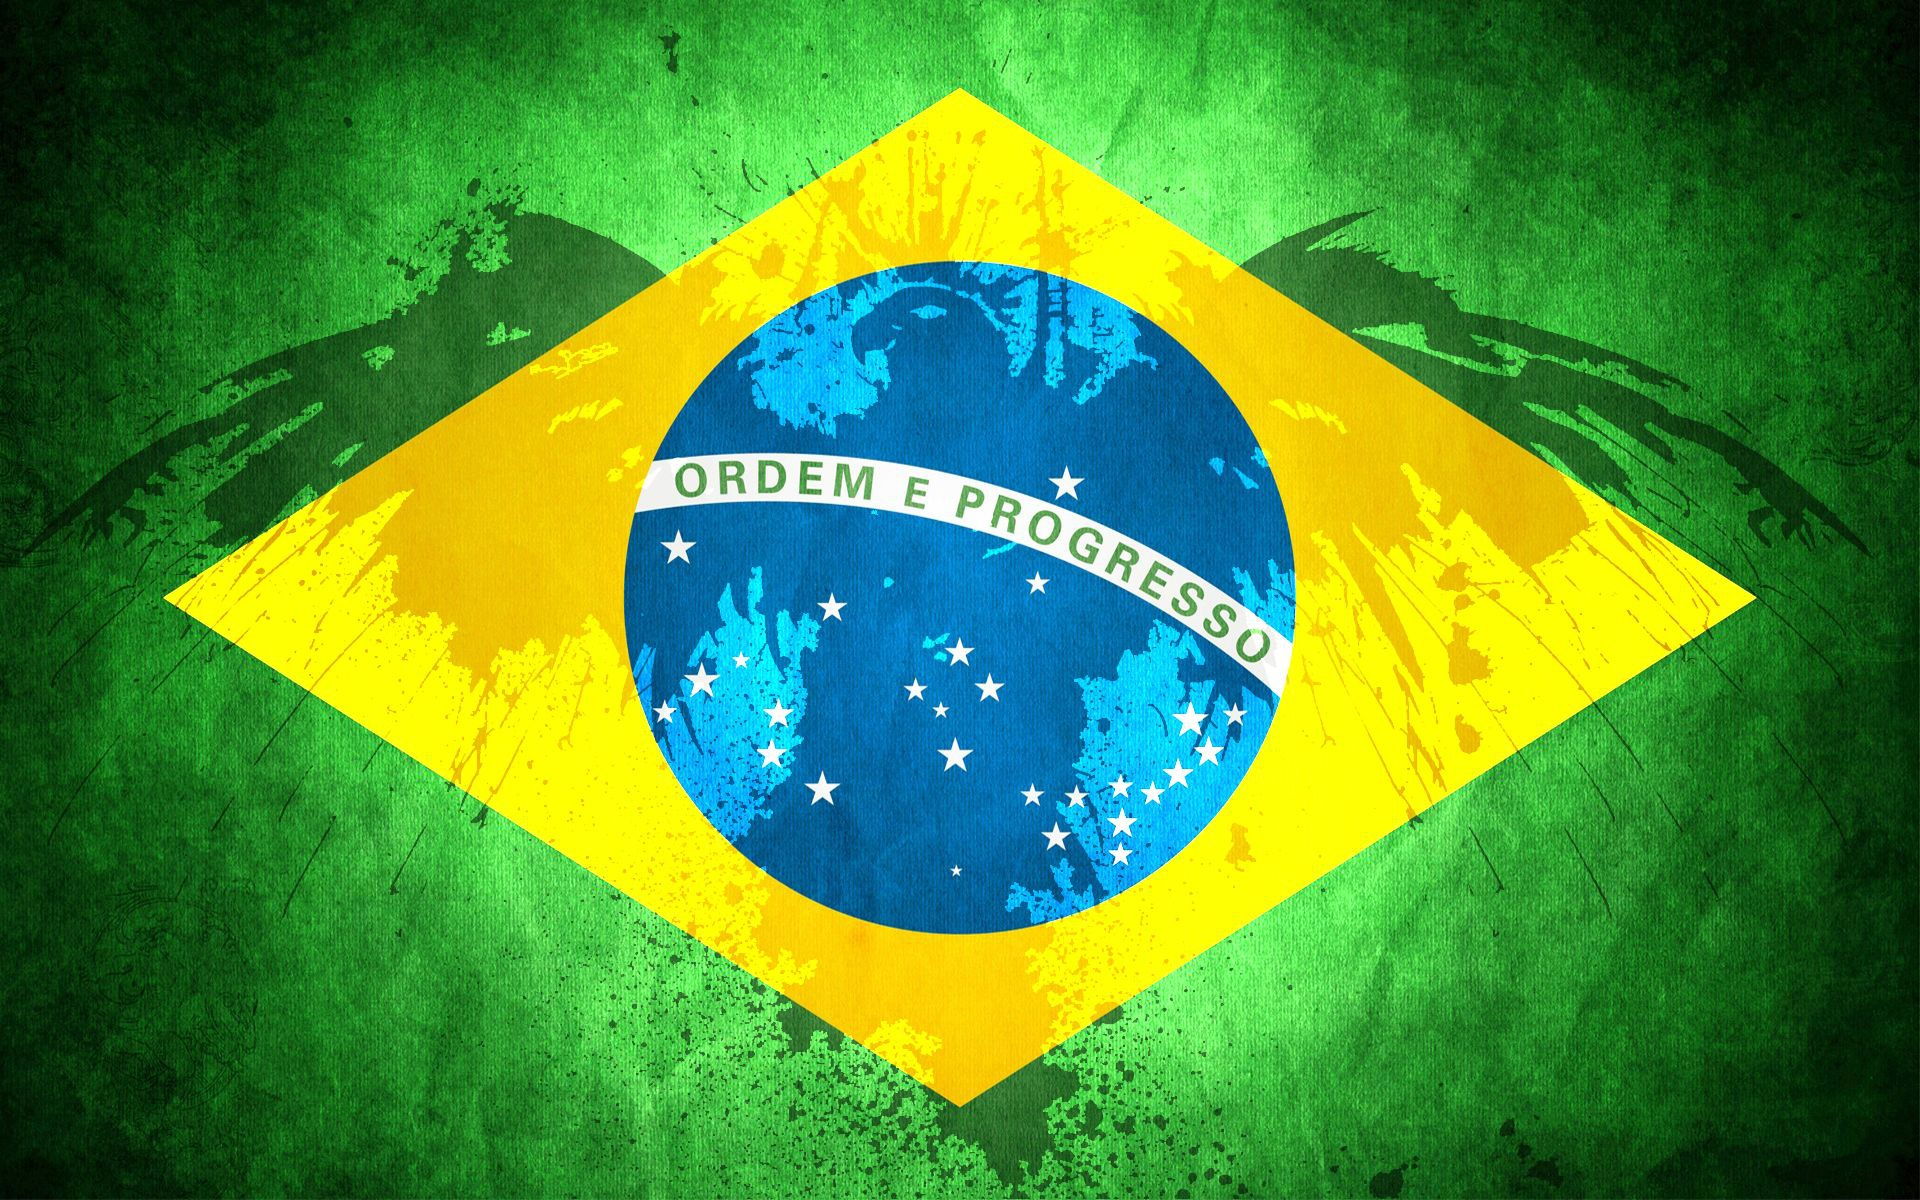 Free Widescreen Wallpaper Fall Brazil Soccer Hd Wallpaper Pixelstalk Net